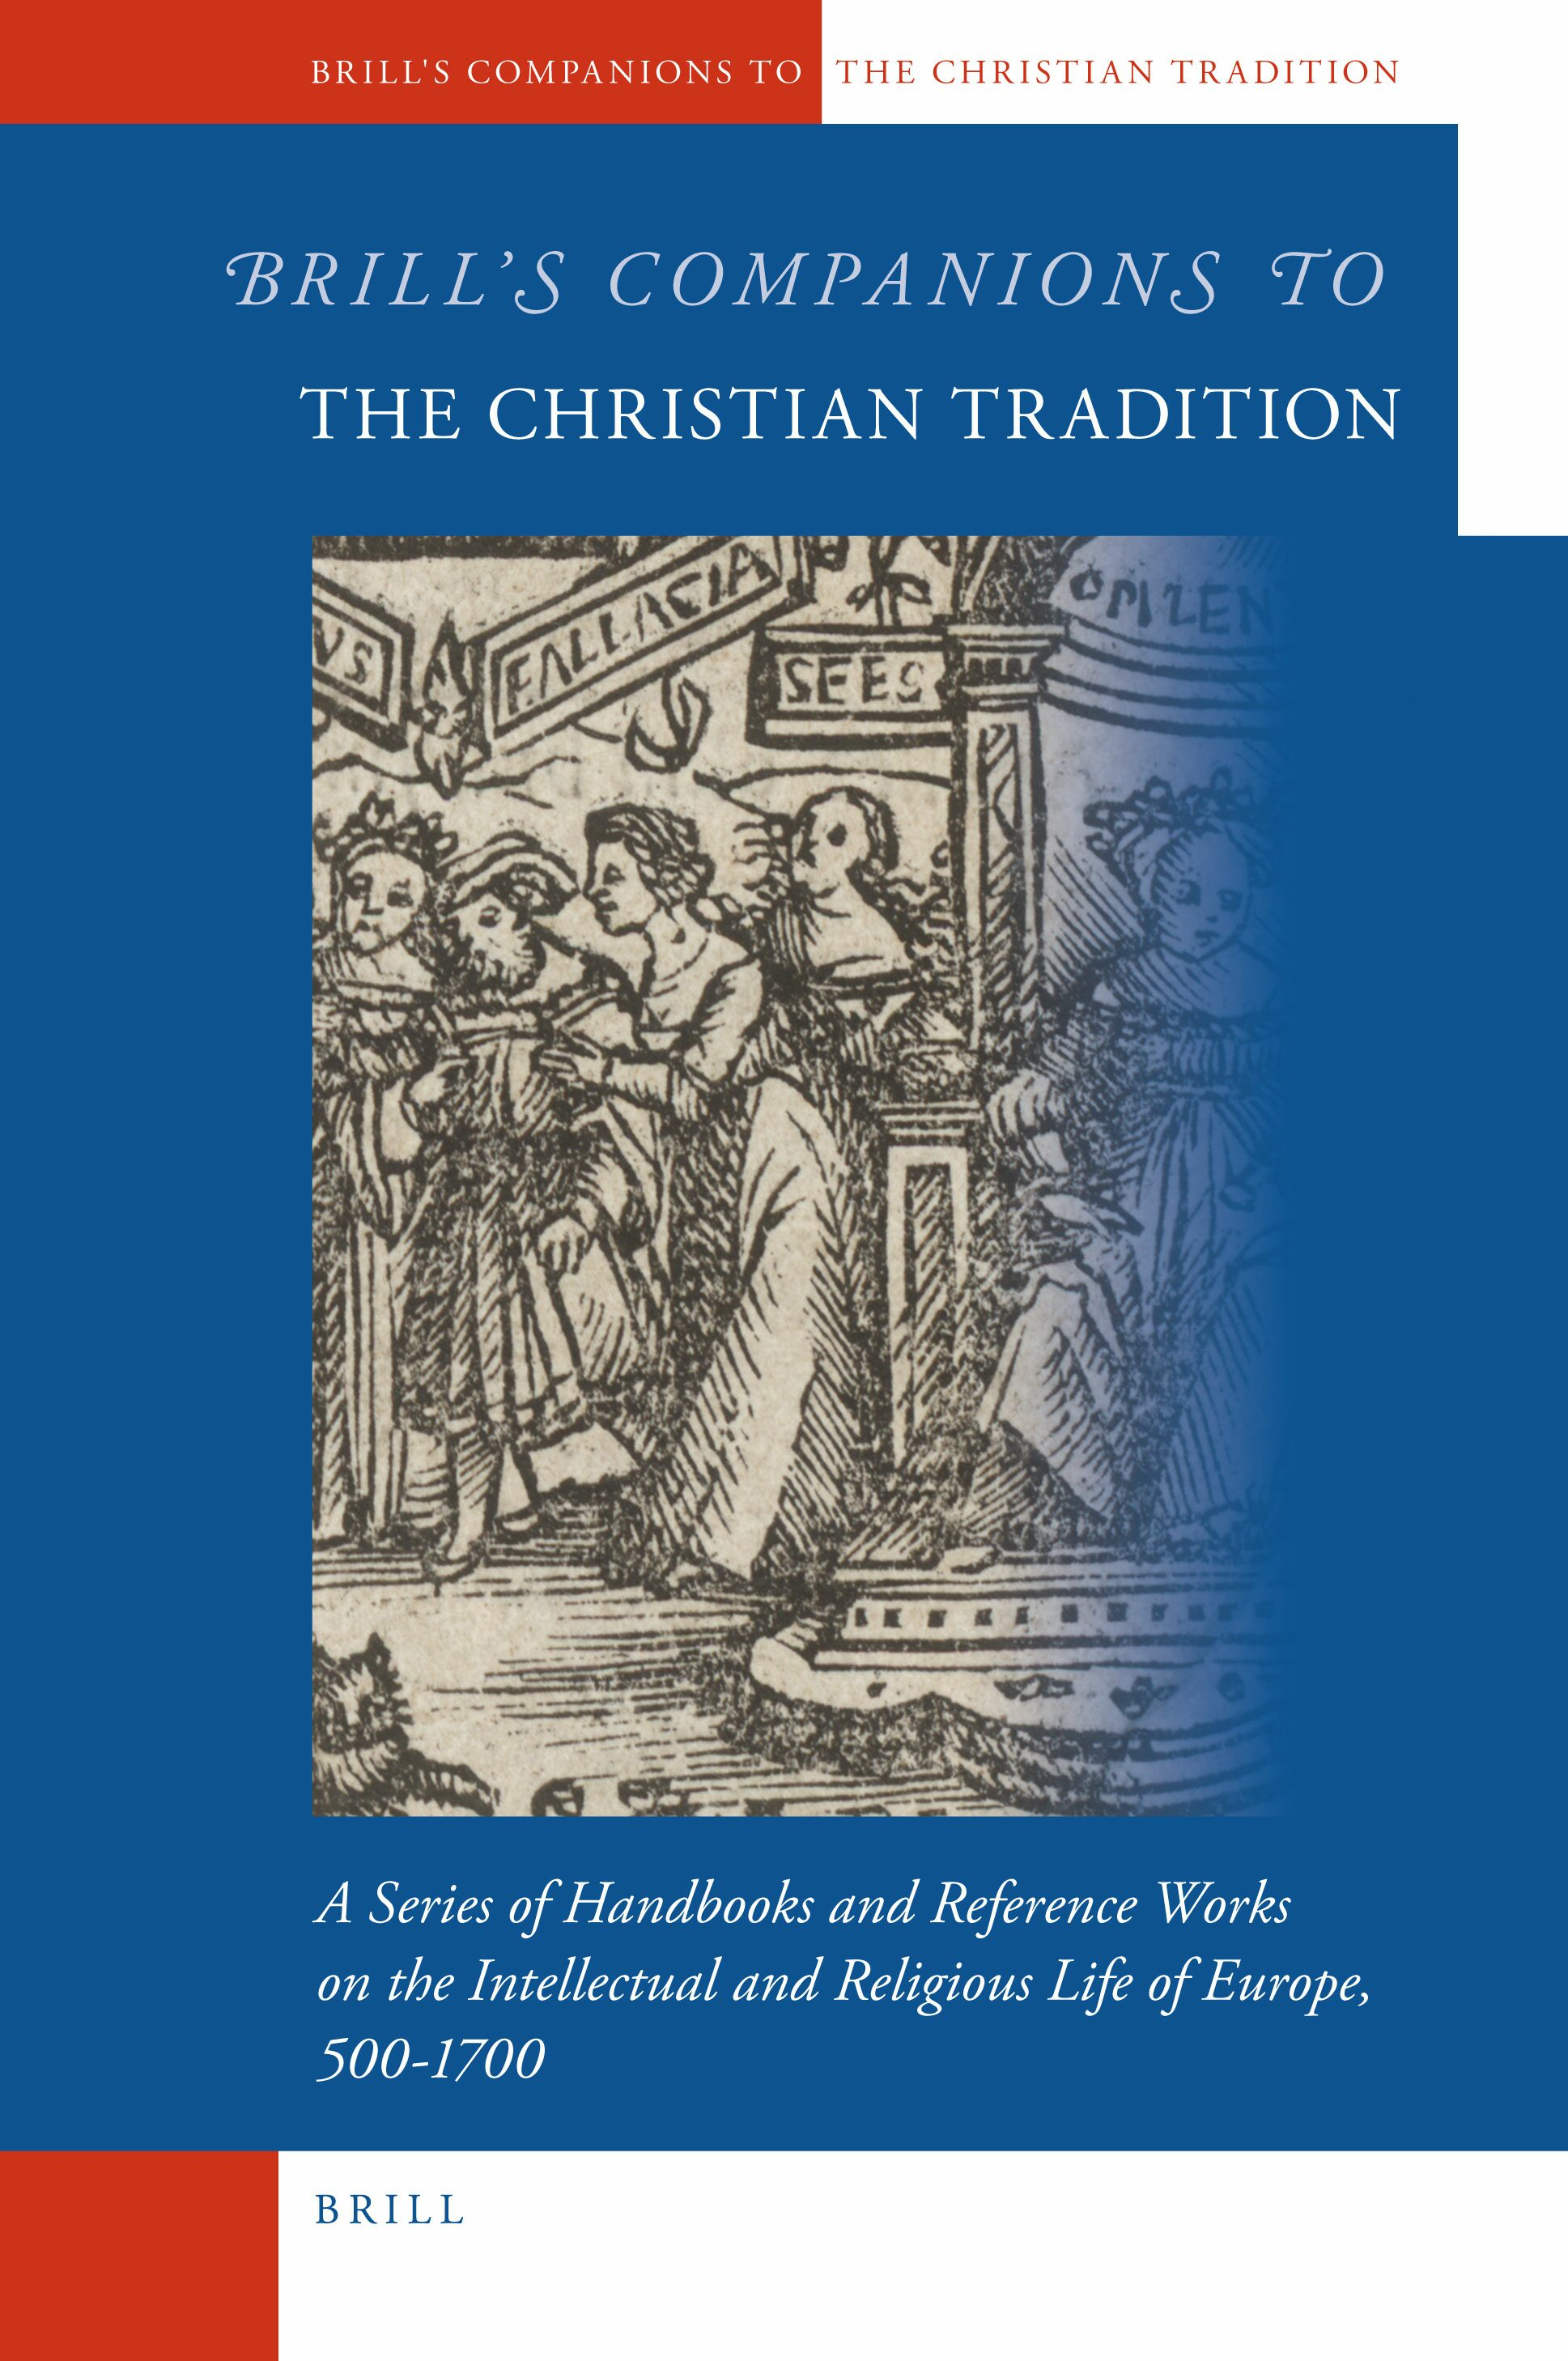 Brill's Companions to the Christian Tradition